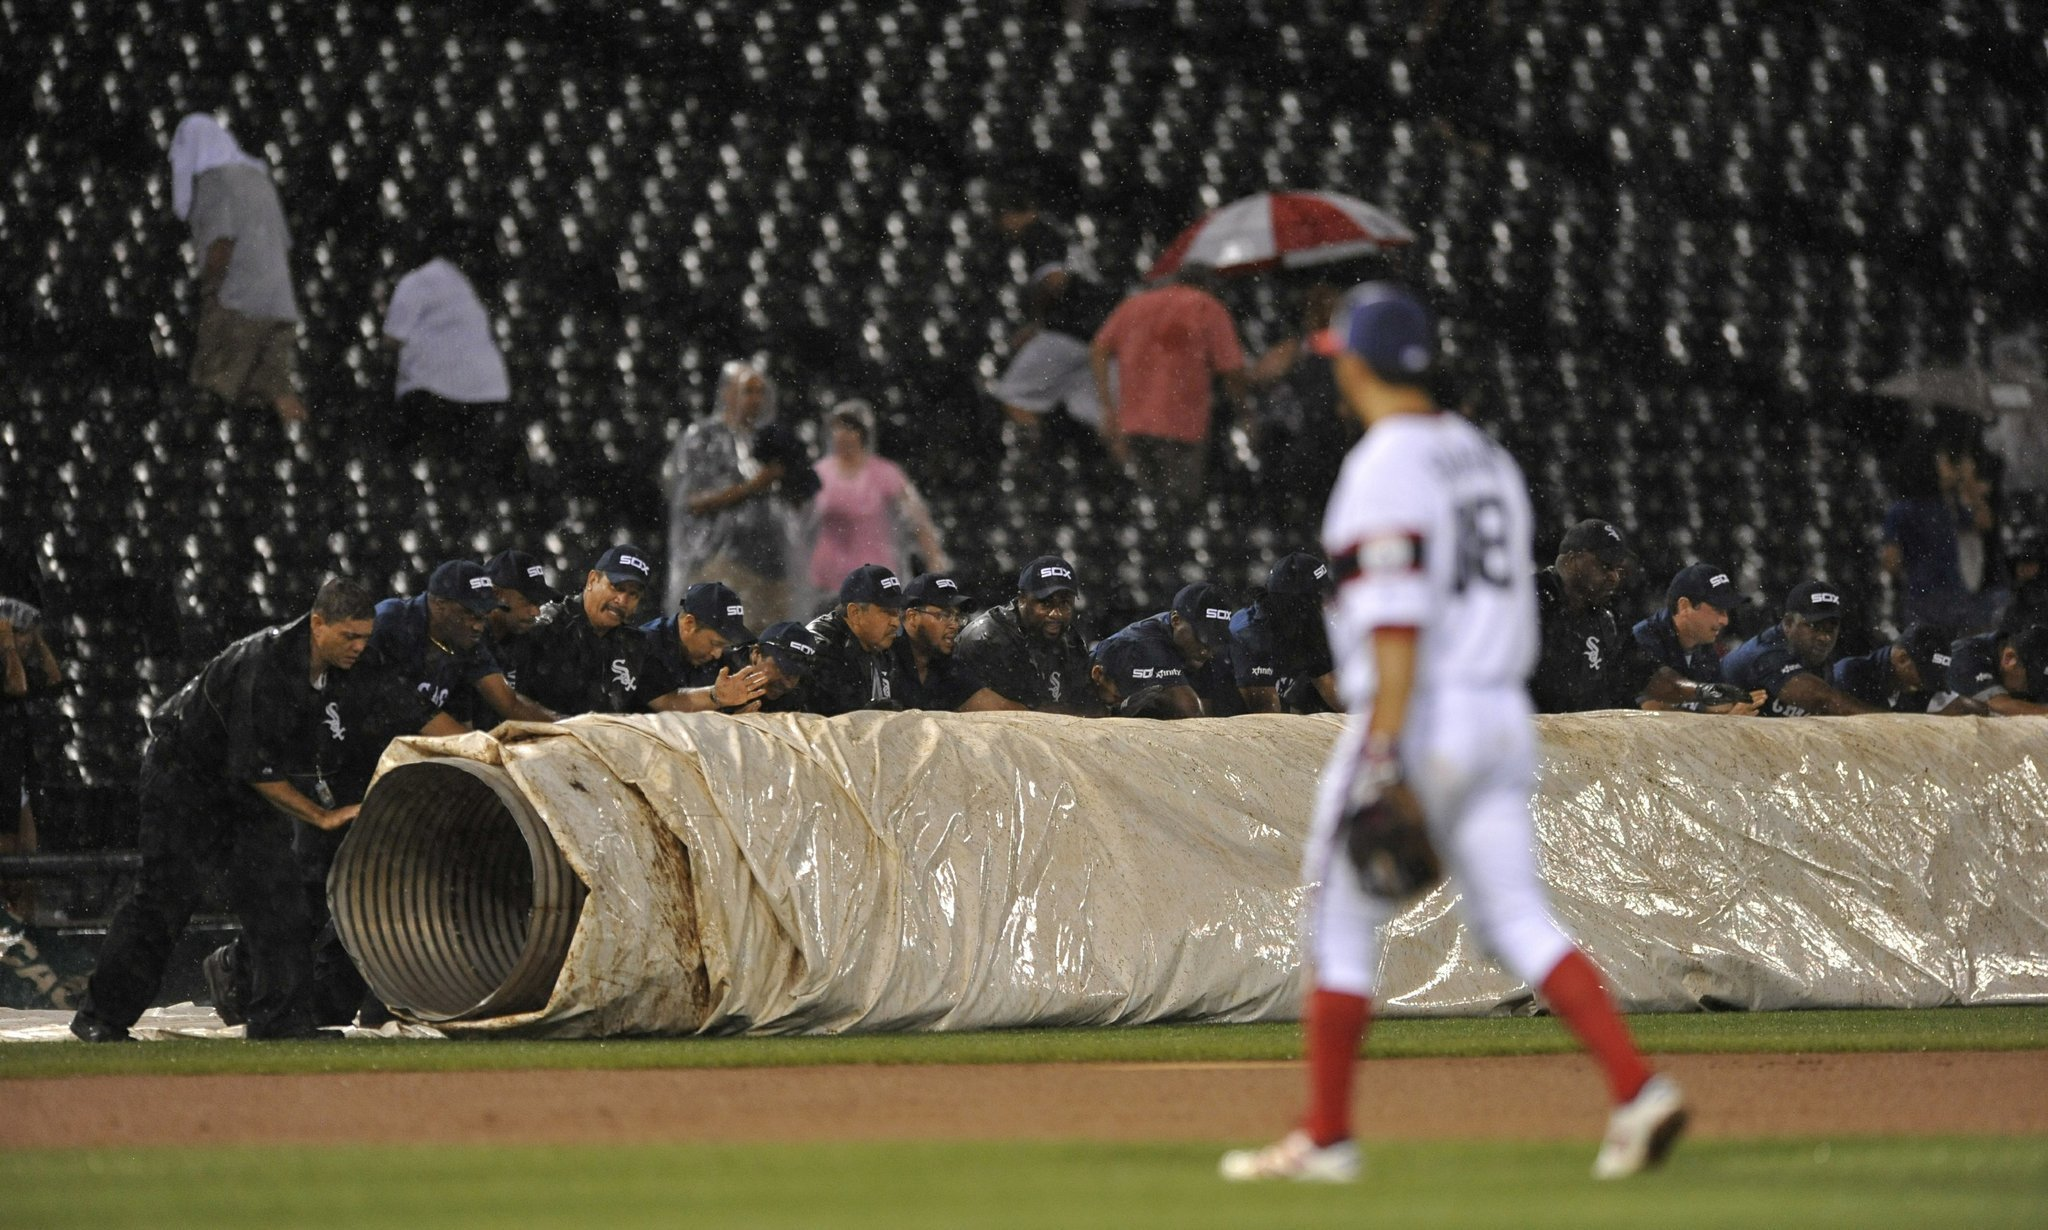 Tigers, White Sox to resume suspended game Sunday - The San Diego ...